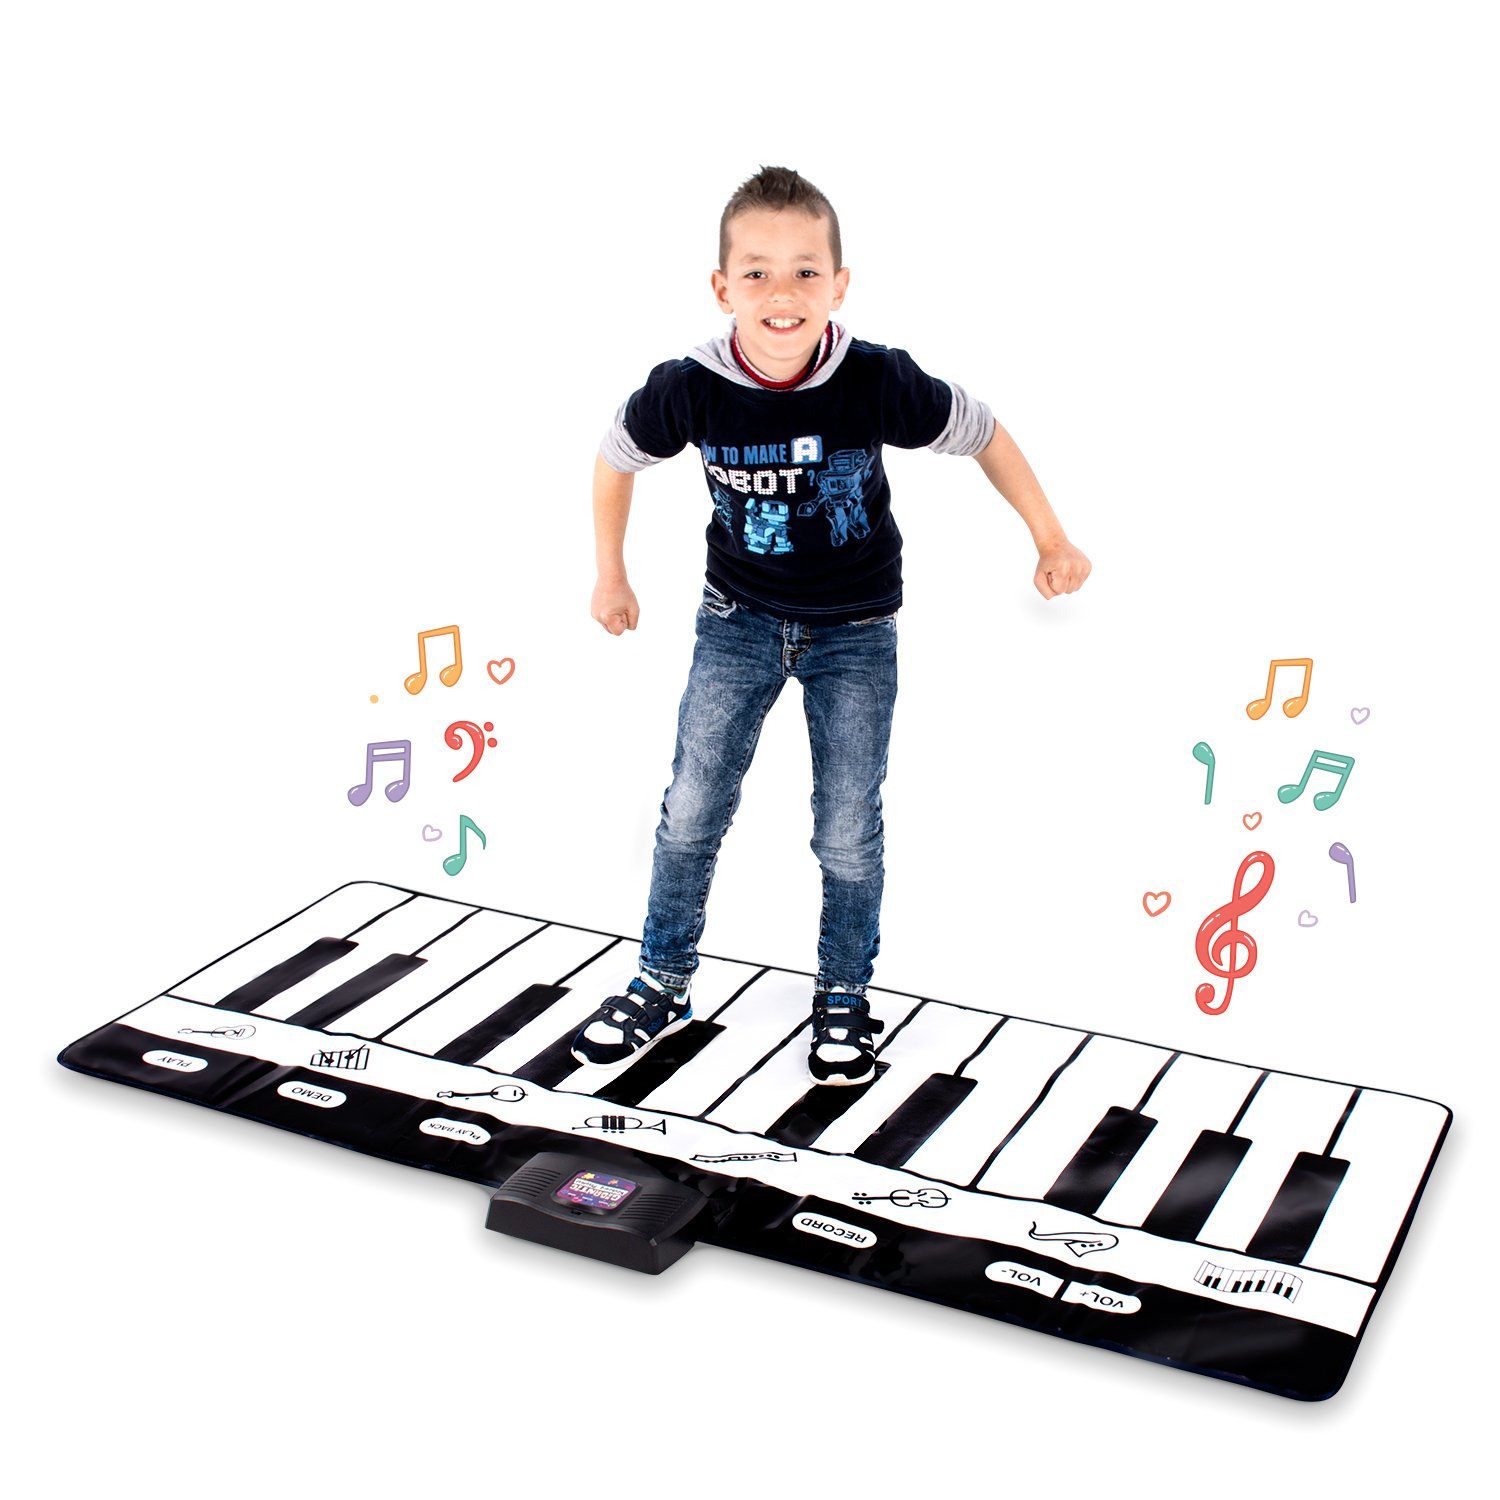 Abco Tech Giant Musical Piano Play Mat – Jumbo Sized Floor Keyboard Piano Activity Mat with Play, Record, Playback & Demo Modes – 8 Different Musical Instruments Sound Options – 24 Keys